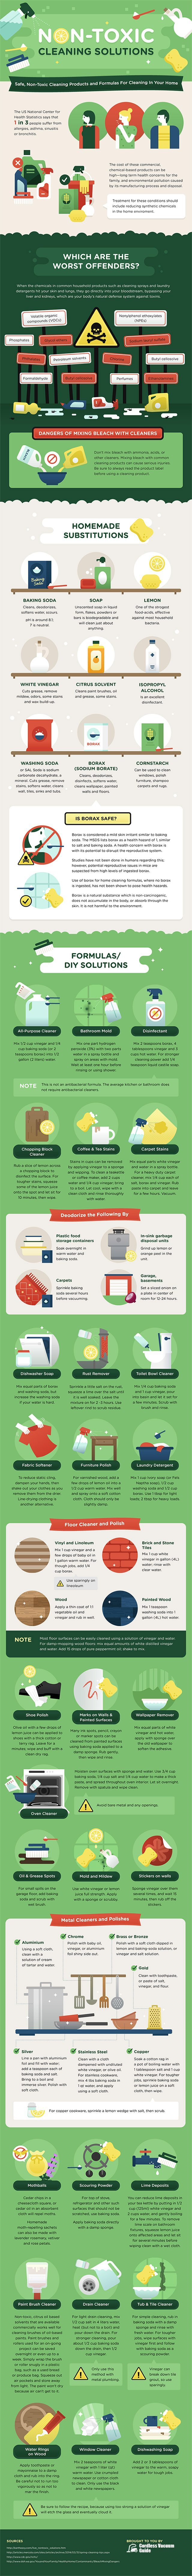 The Comprehensive Guide to Non-Toxic Home Cleaning Solutions - Infographic